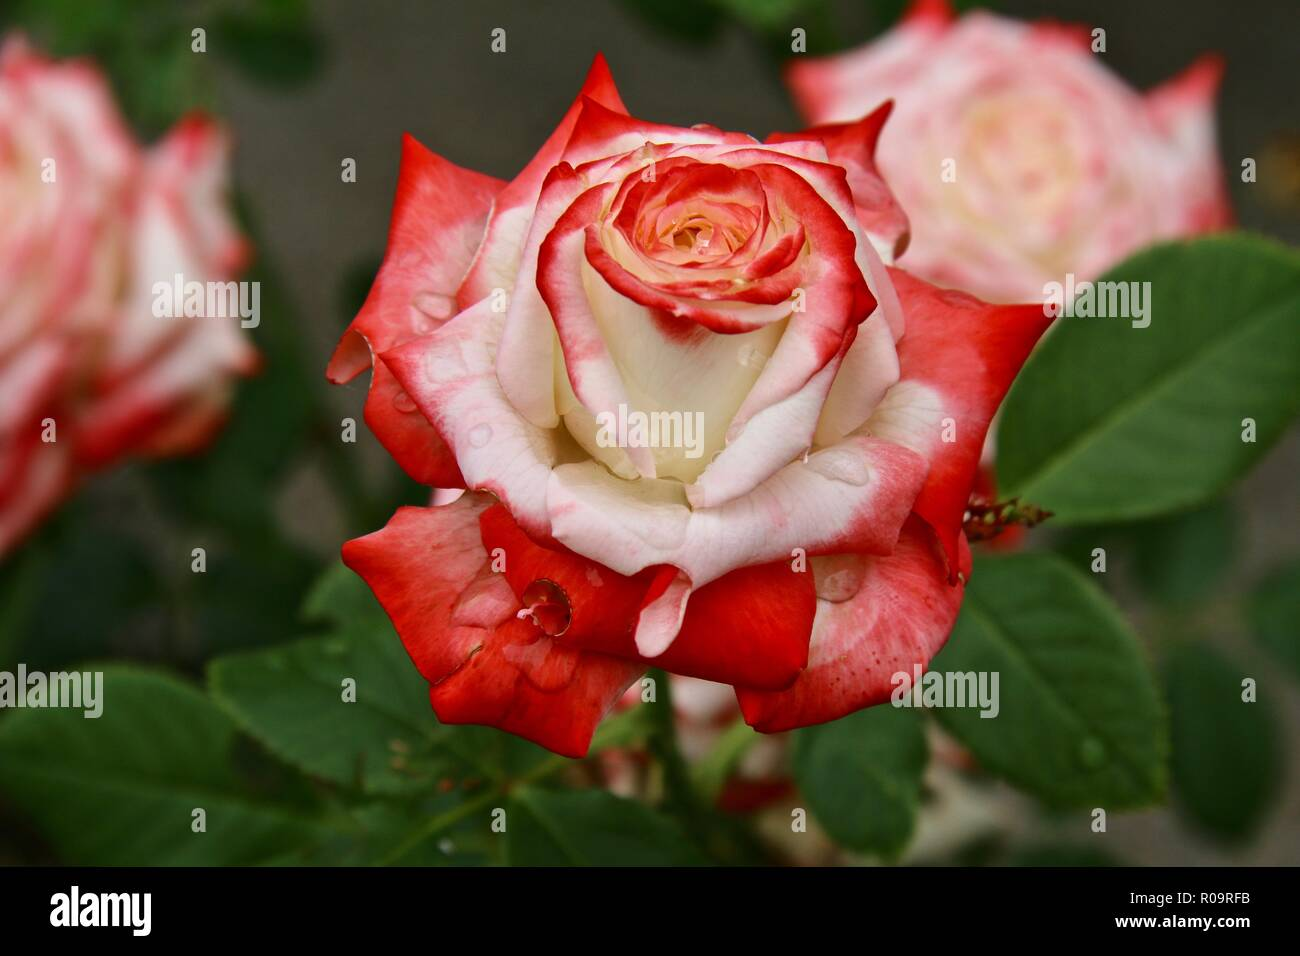 A white rose with deep orange red tips covered in raindrops after an afternoon shower - Stock Image